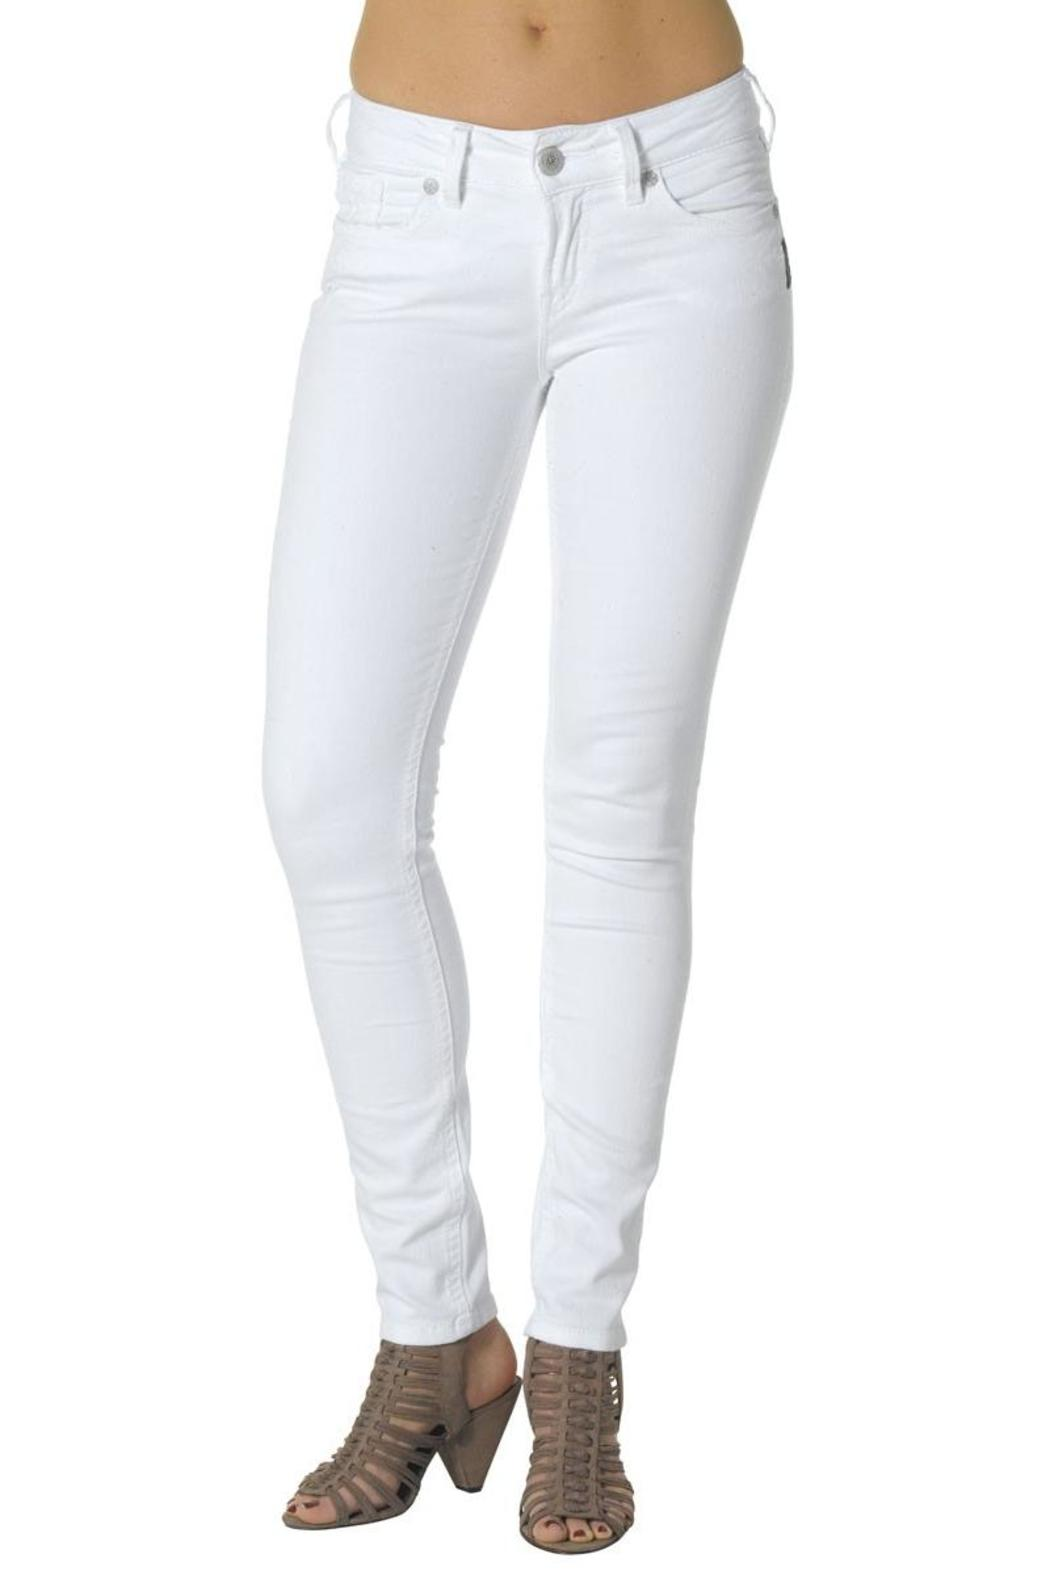 Shop for a Silver Jeans Co® Suki plus size straight leg jean at downcfilau.gq Read reviews and browse our wide selection to match any budget or occasion.